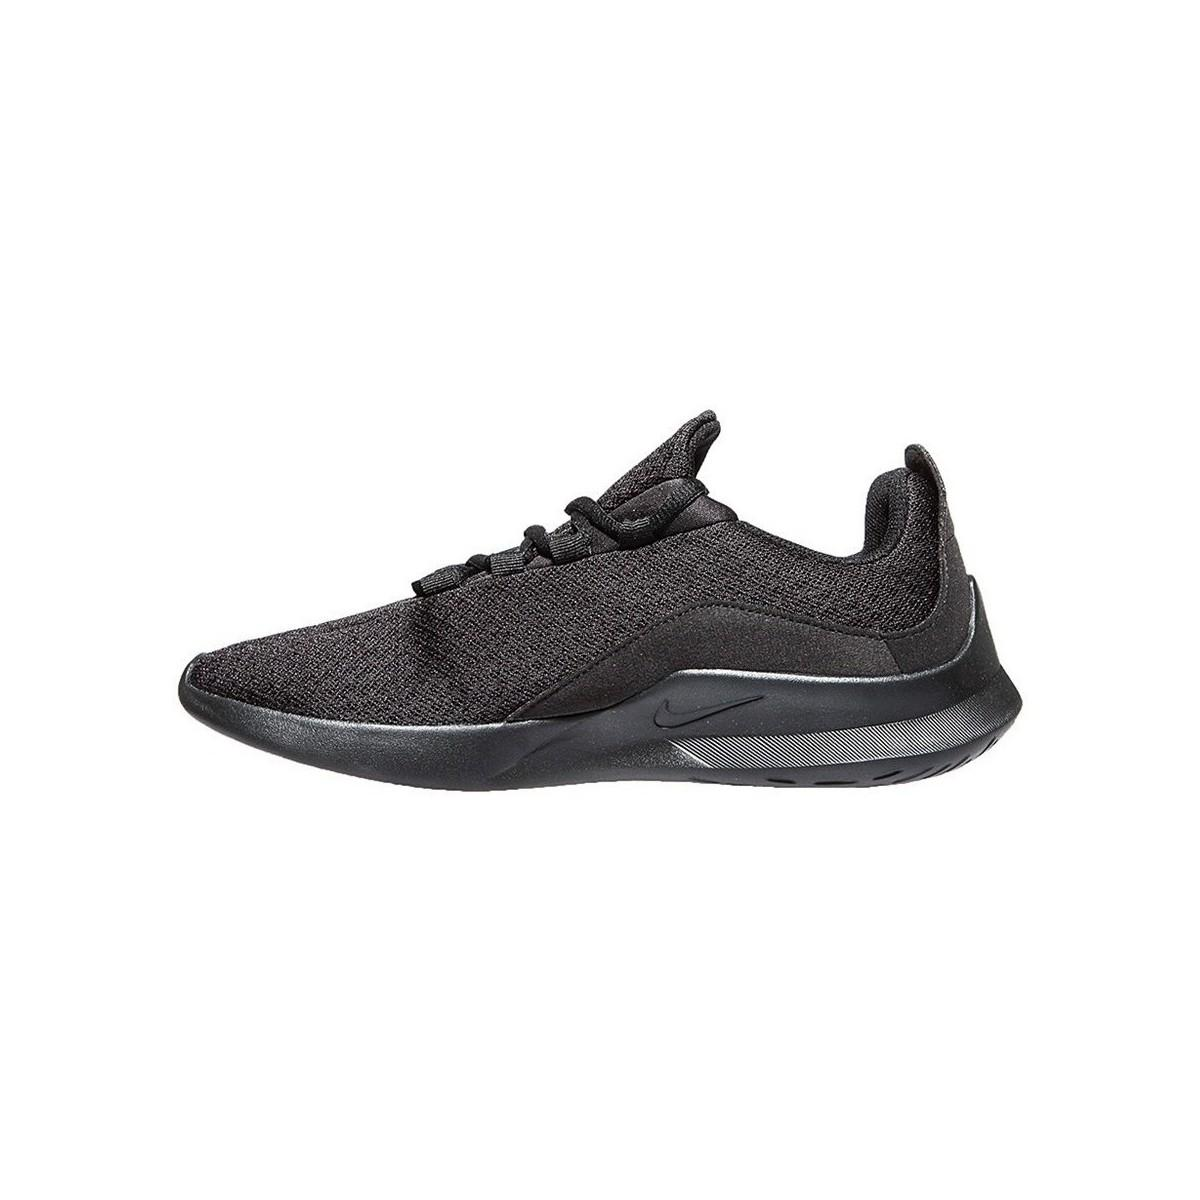 168822004fbbf Nike Viale Men s Shoes (trainers) In Black in Black for Men - Lyst